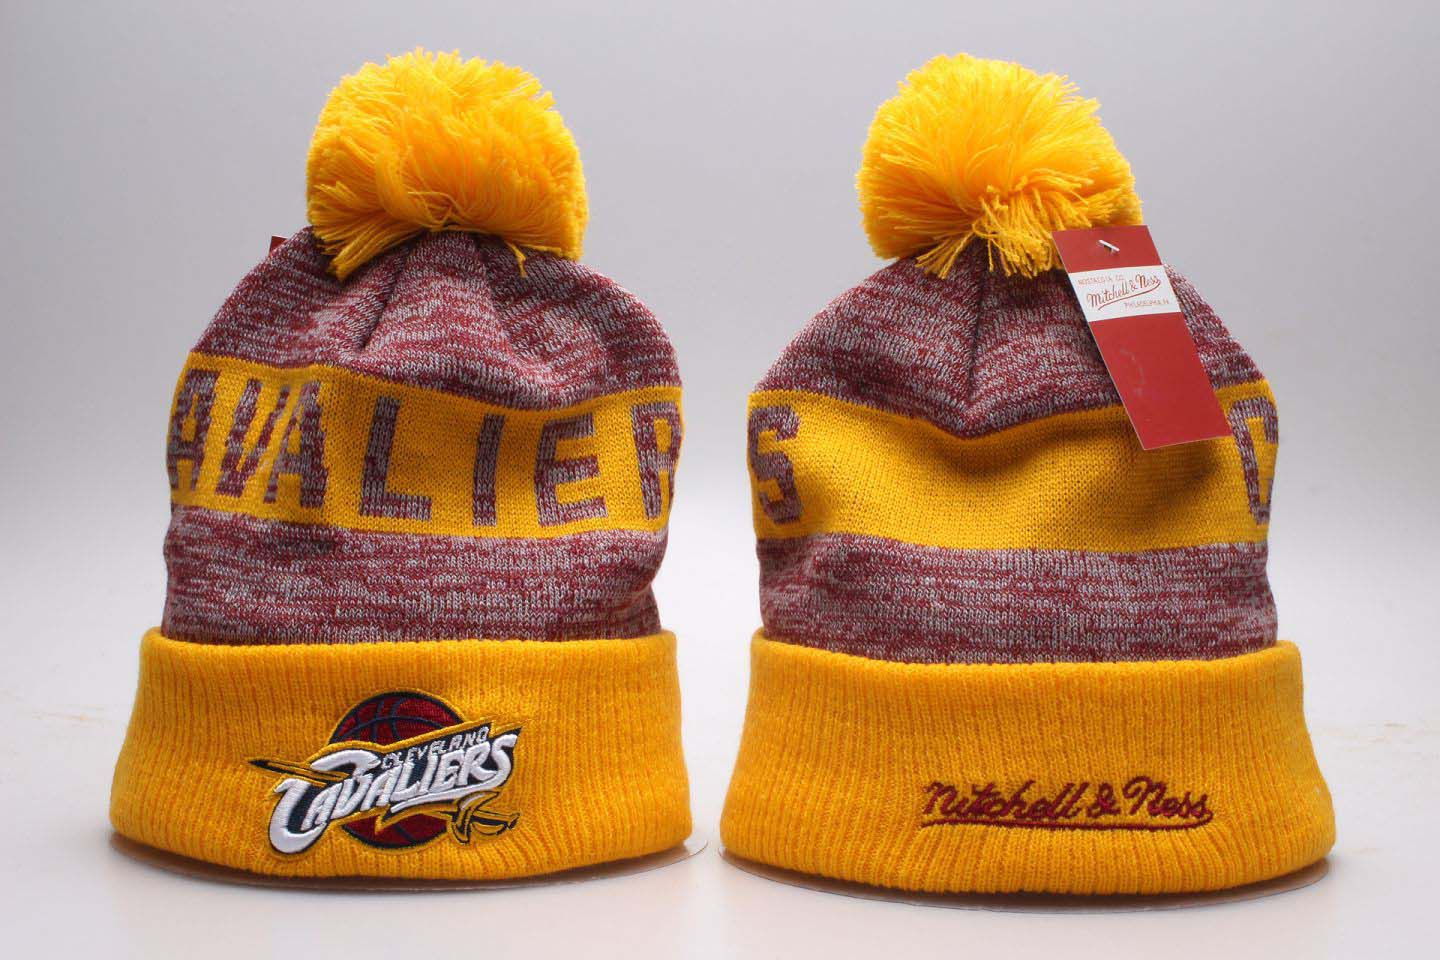 NBA Cleveland Cavaliers Beanie hot hat